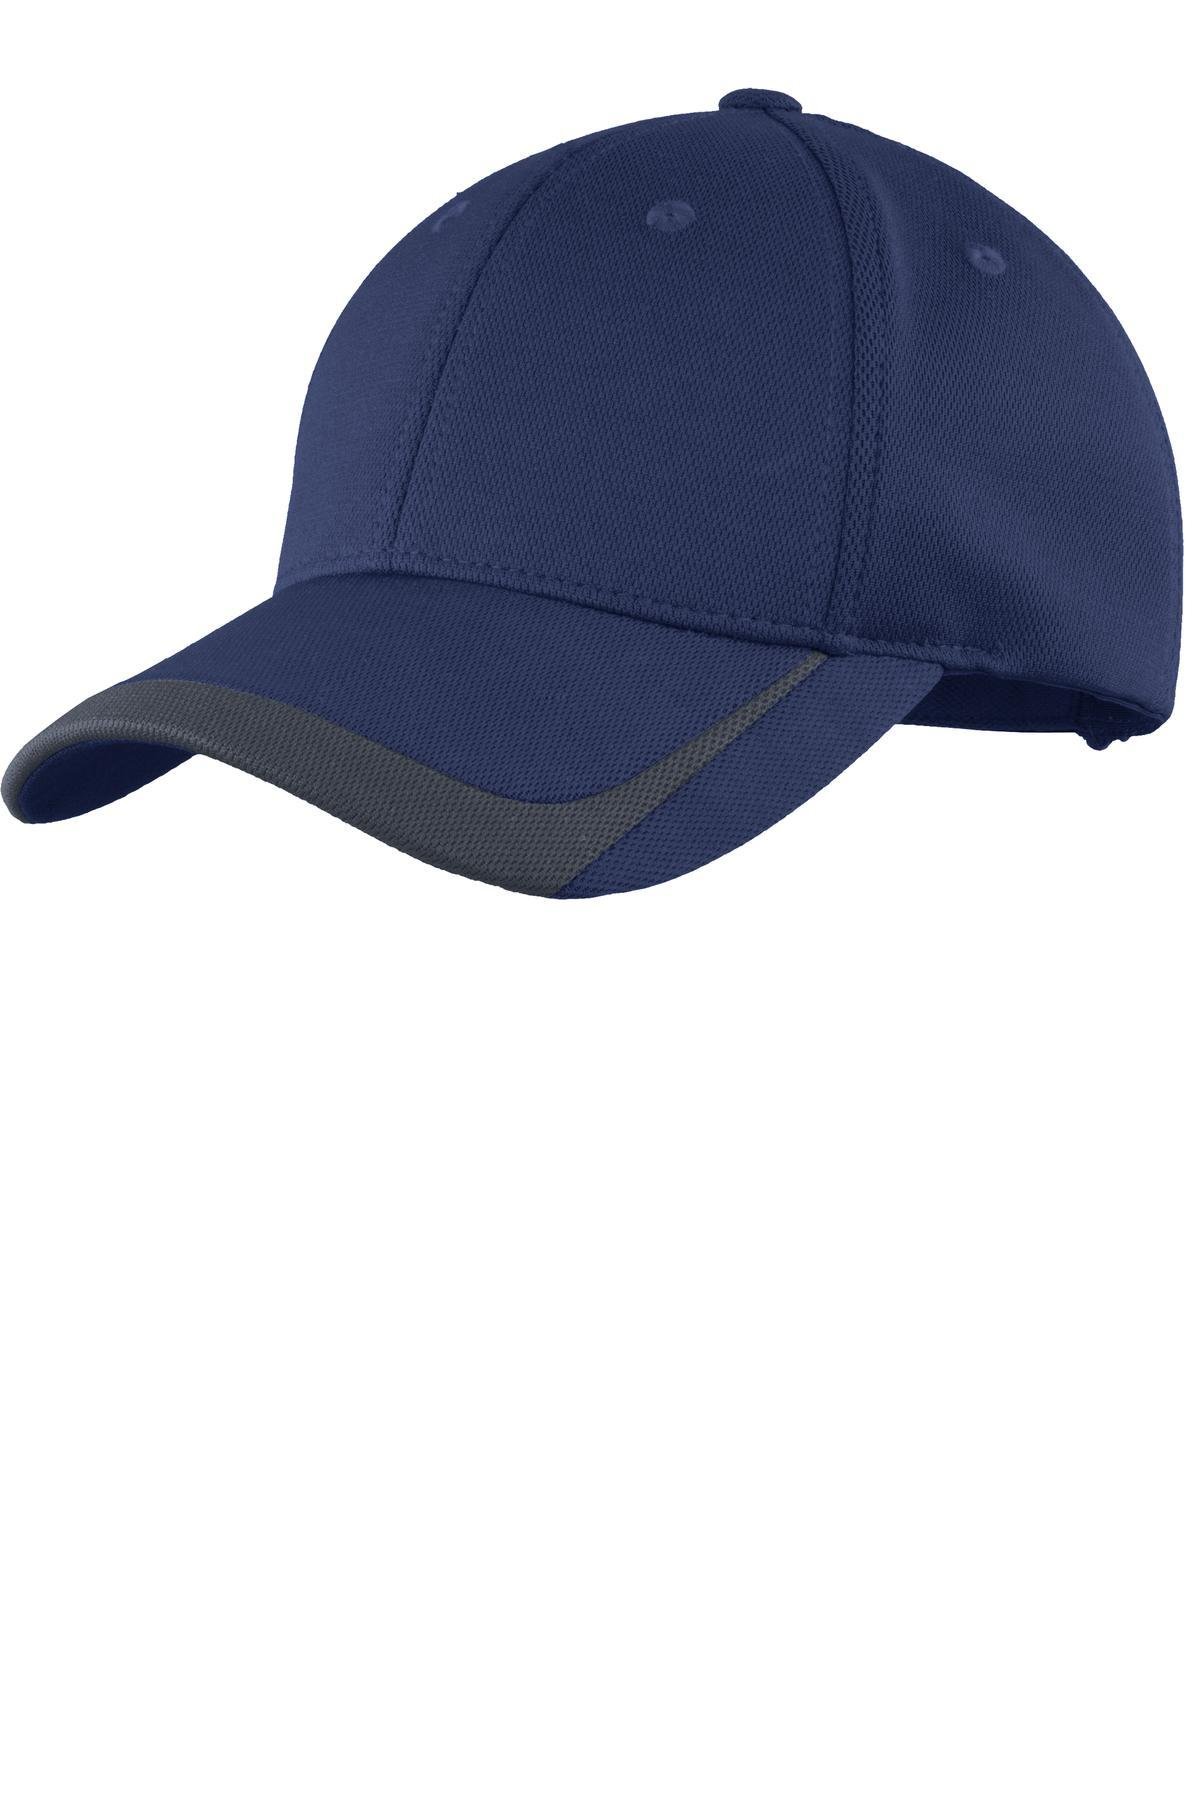 True Navy/ Graphite - Sport-Tek STC24